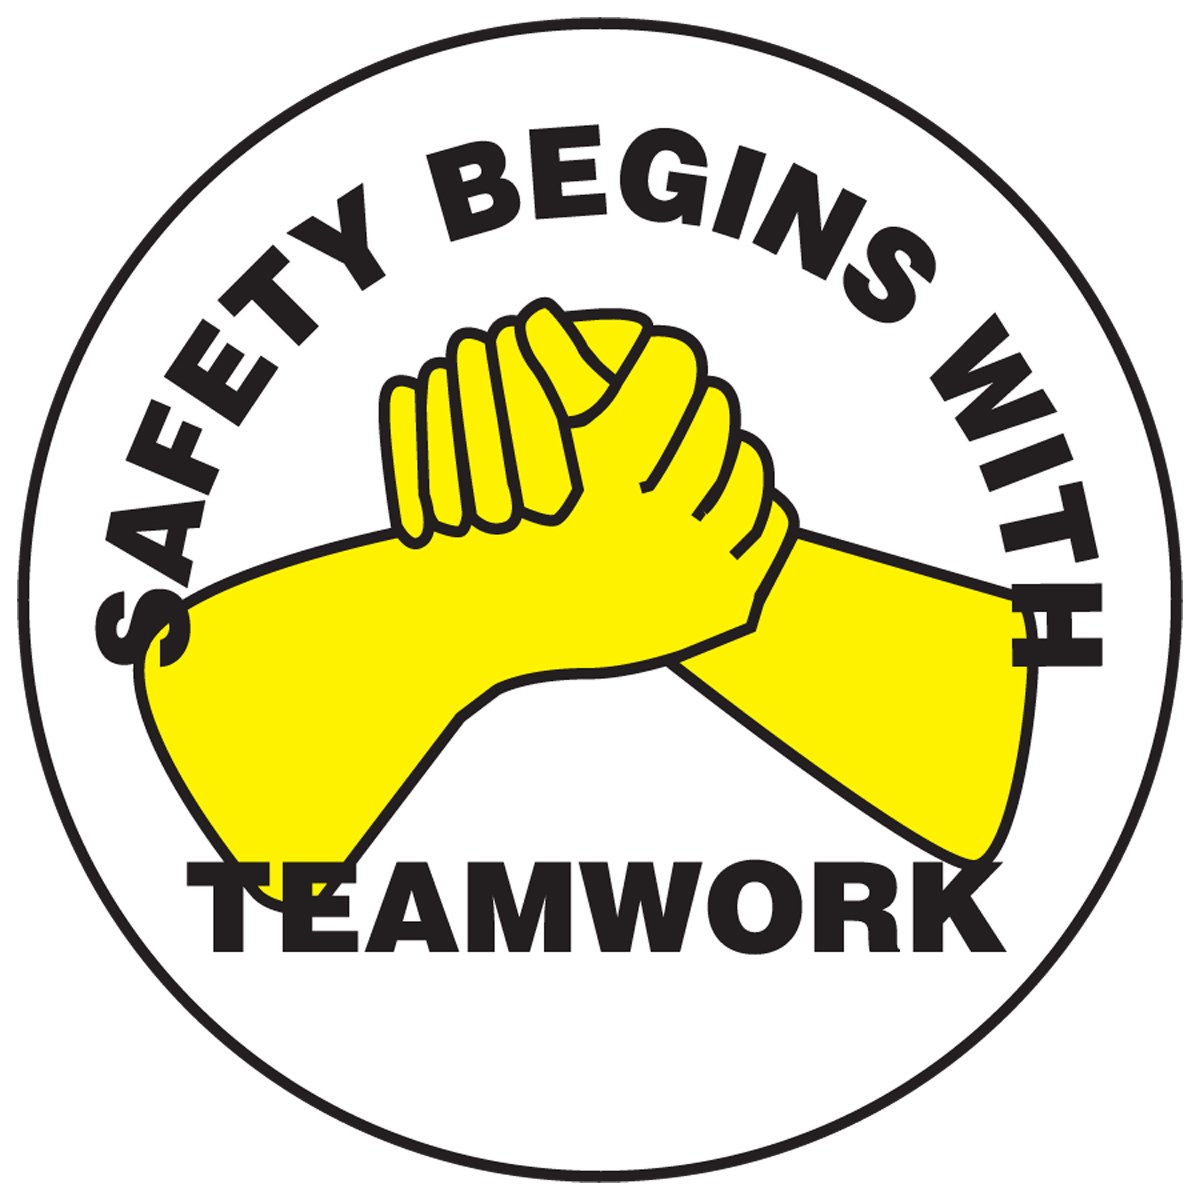 SAFETY BEGINS WITH TEAMWORK